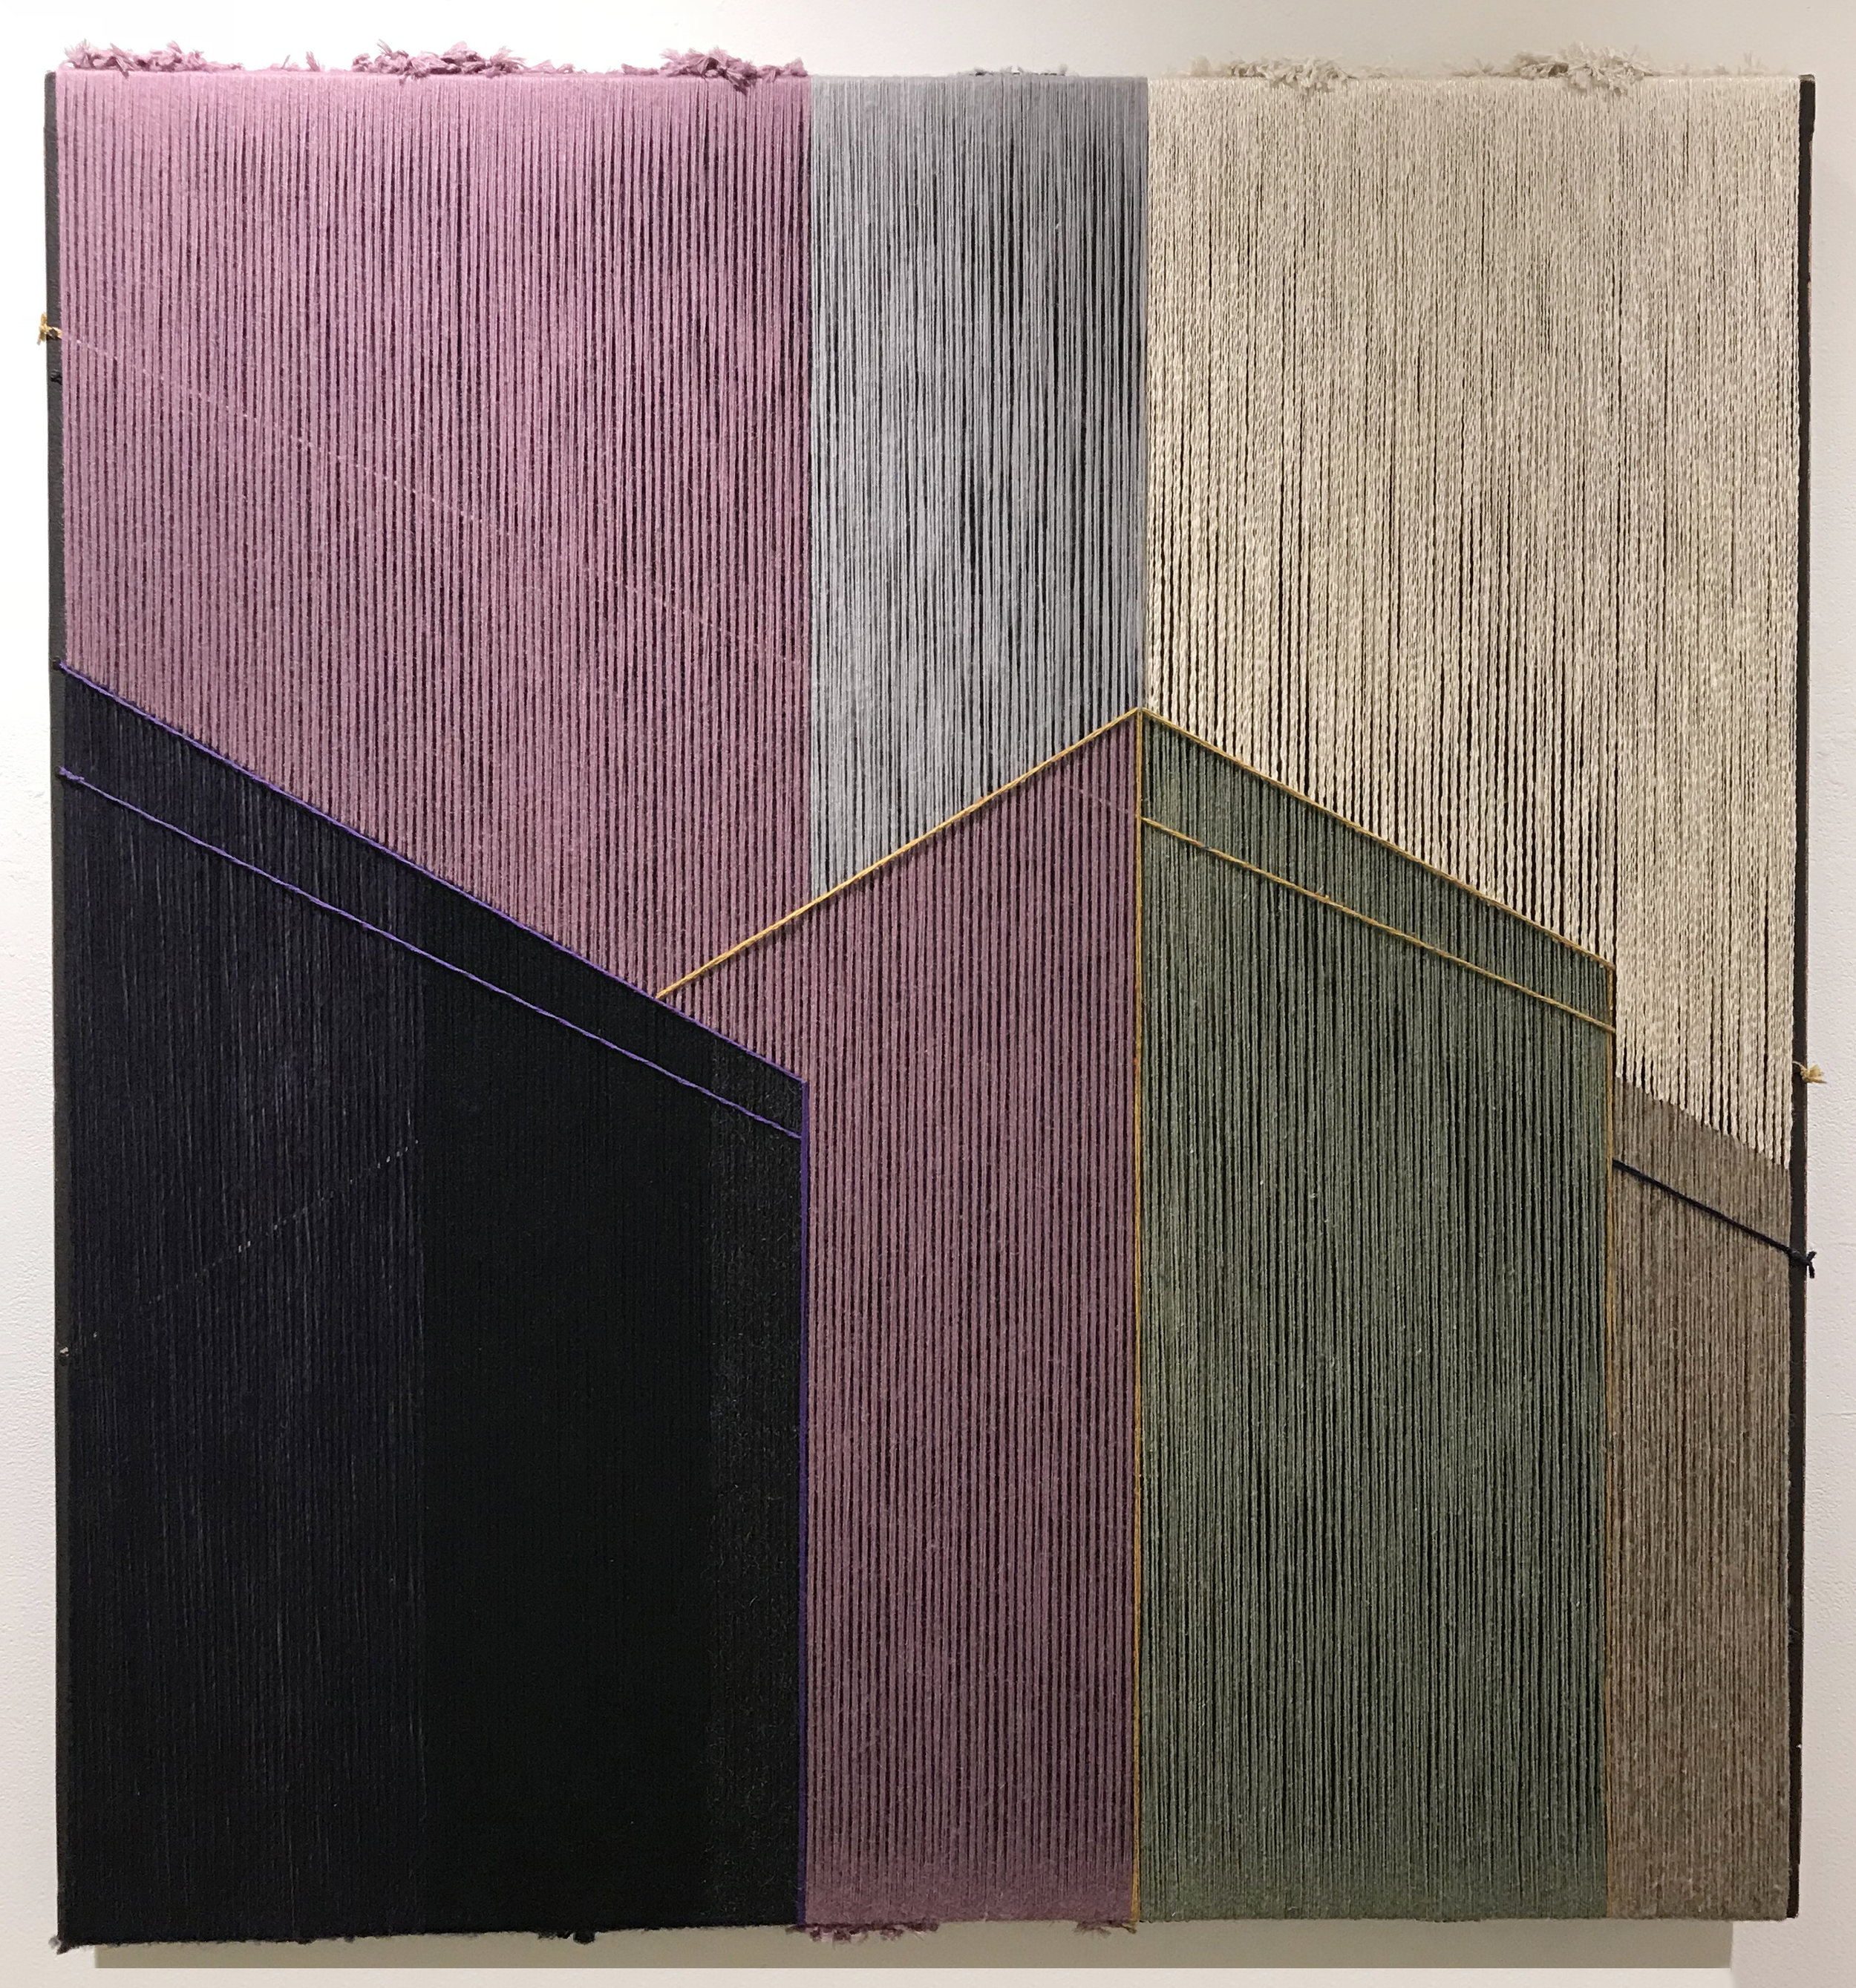 anonymous storefronts  2016  raw Mexican wool, Iranian wool, cotton, alpaca  51 x 48 in.